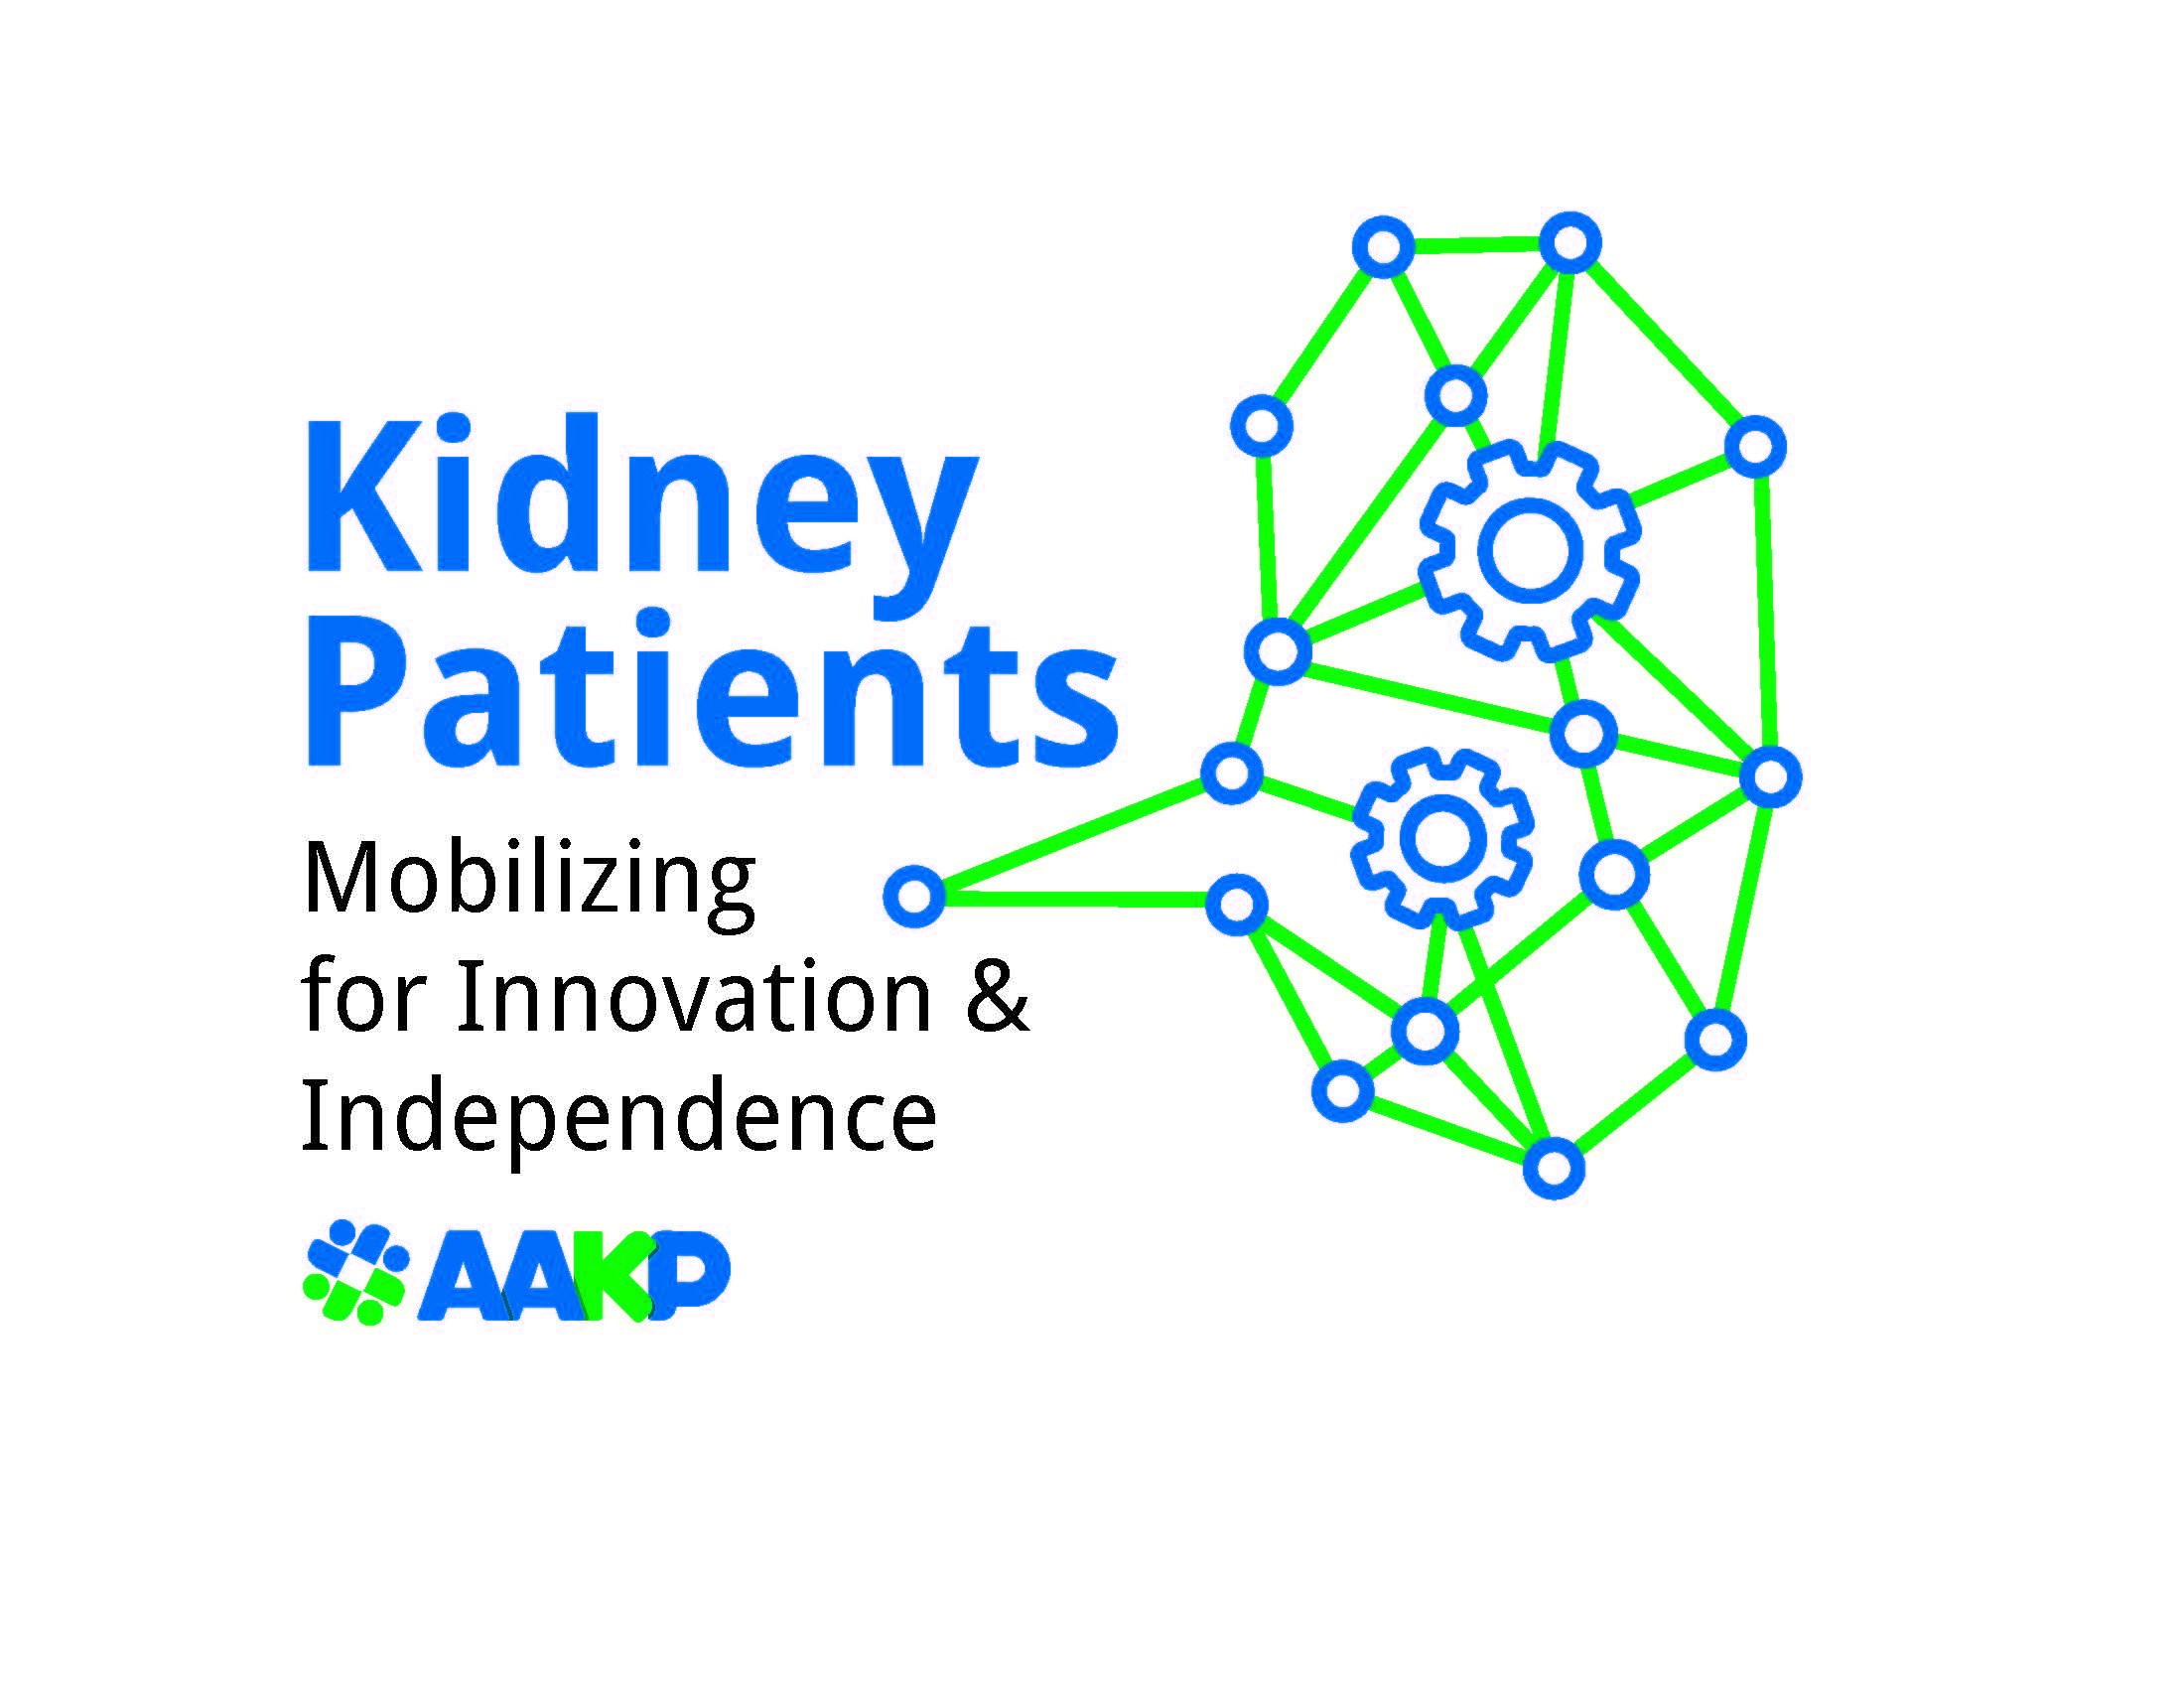 Pharma And Health Leaders Say Kidney Patients Lead Care Innovation